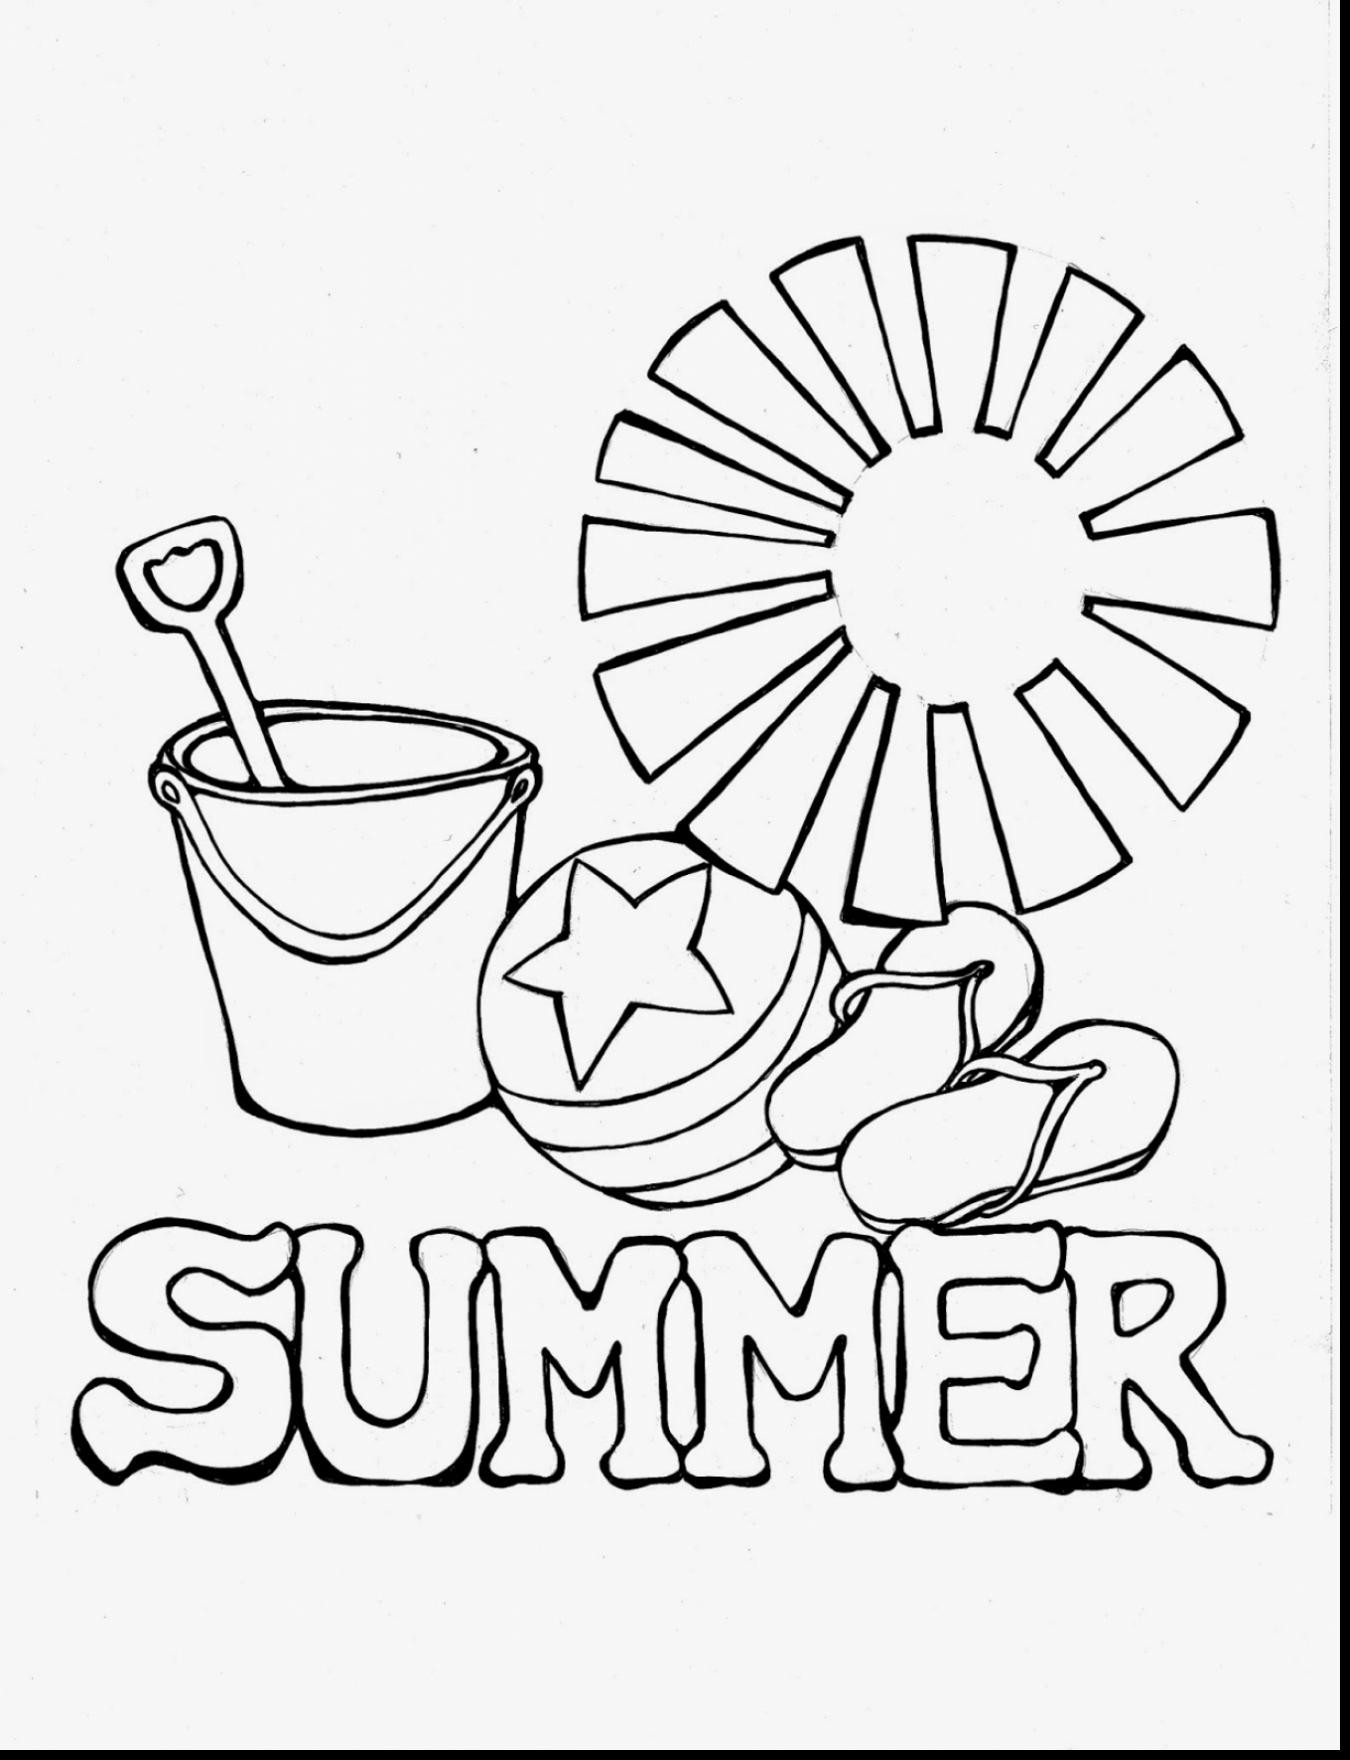 1350x1760 Summer Coloring Pages With Sun For Kids Luxury Summer Coloring